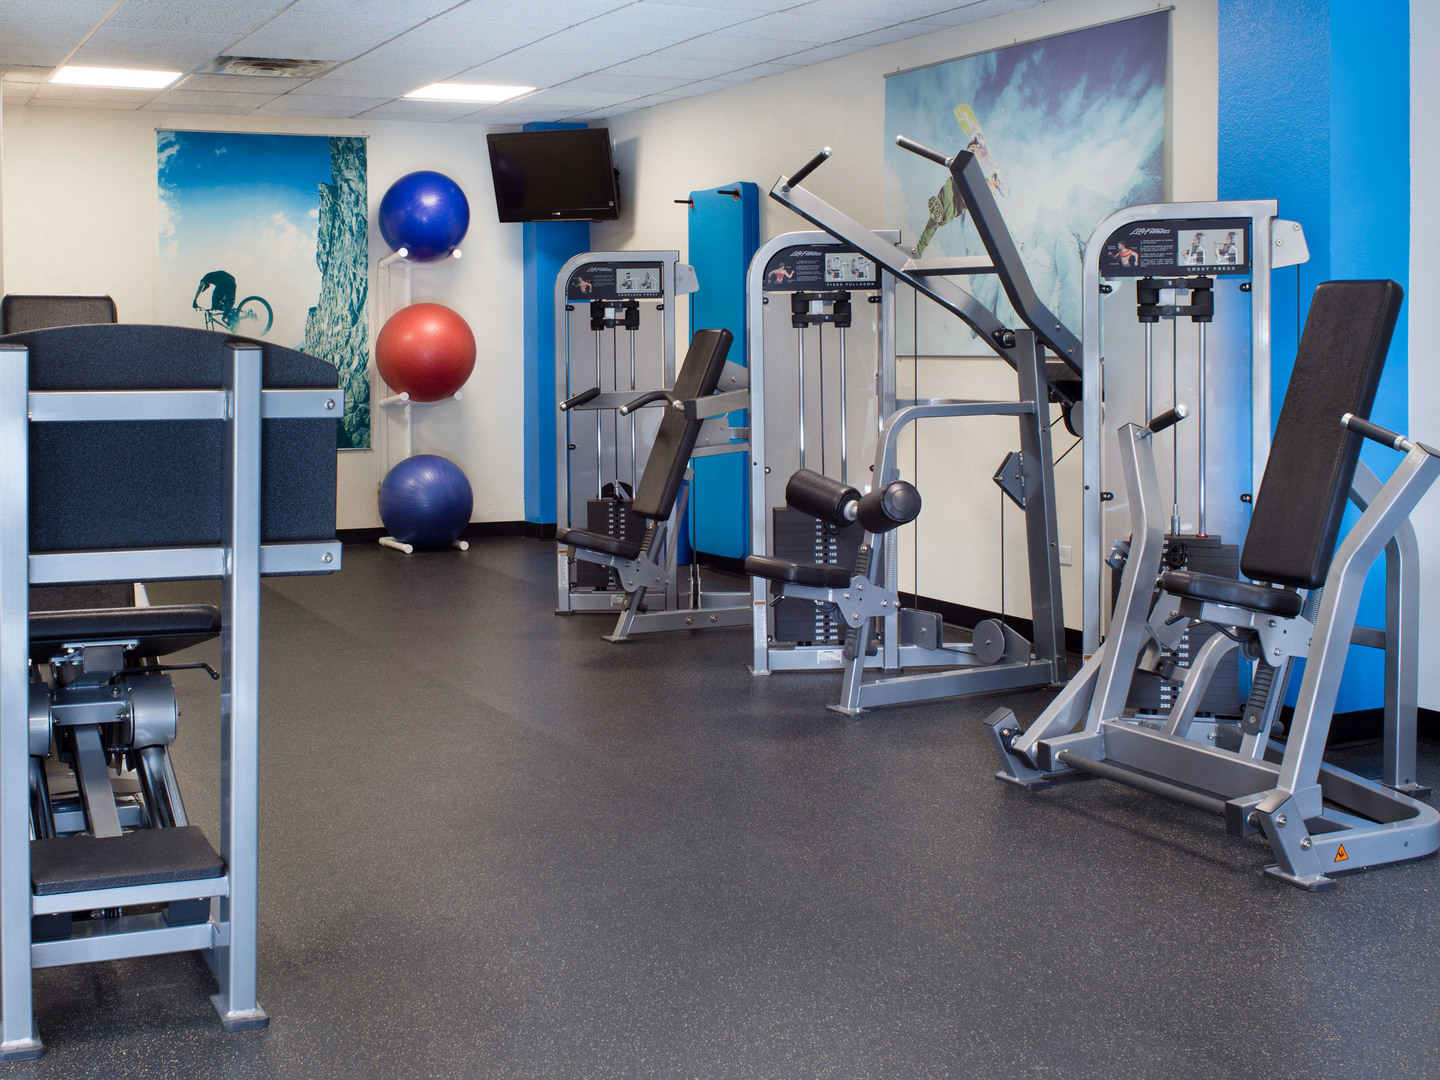 Marriott's Mountain Valley Lodge Fitness Center. Marriott's Mountain Valley Lodge is located in Breckenridge, Colorado United States.